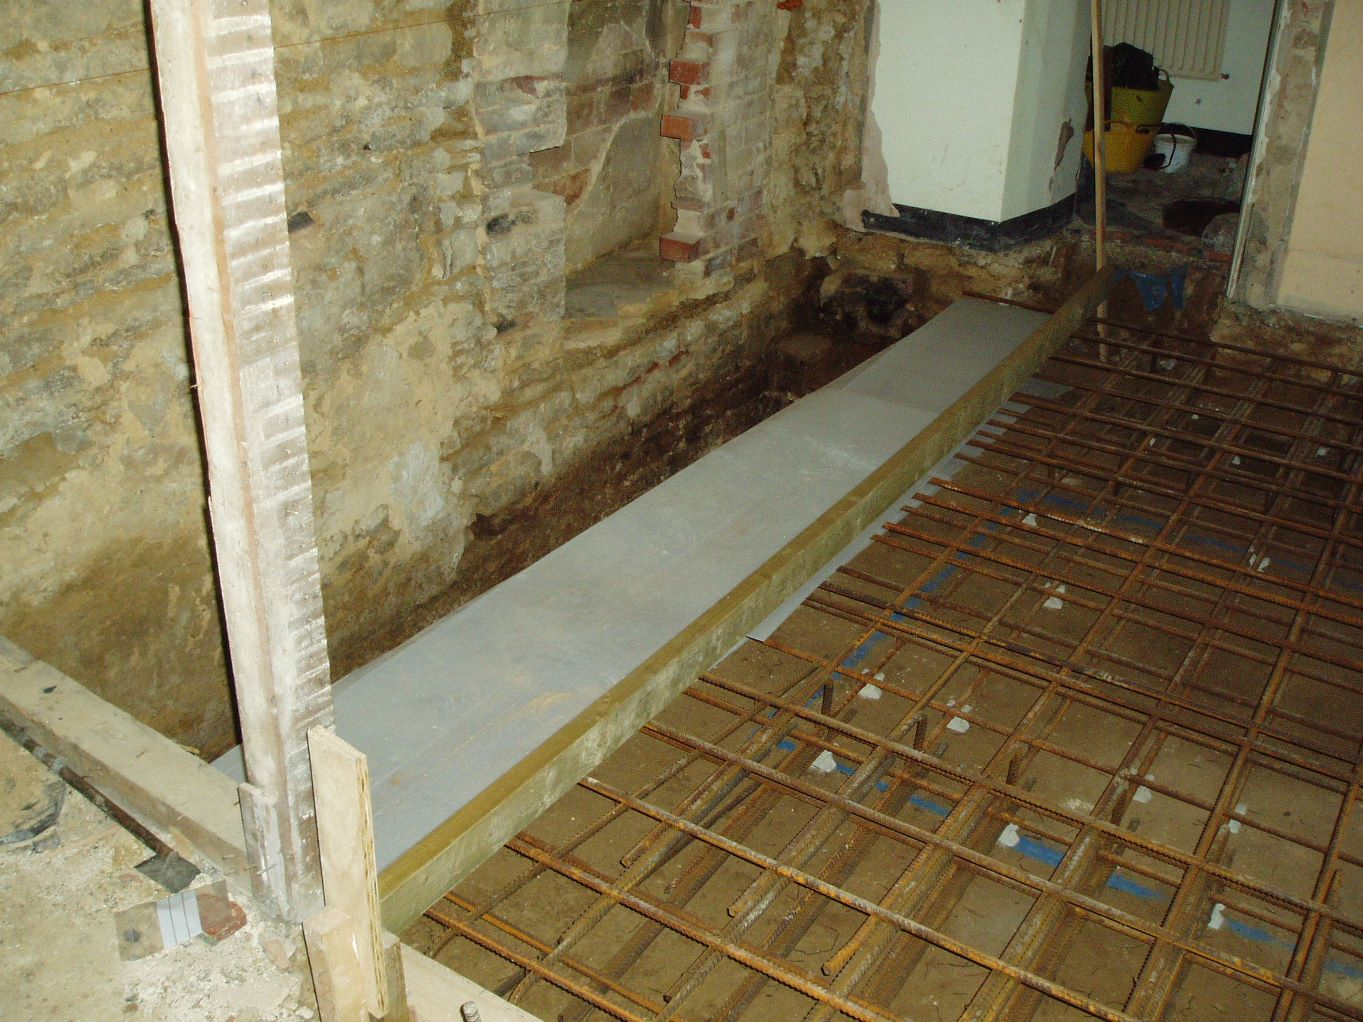 The medieval wall and floor revealed to the left of the lift base